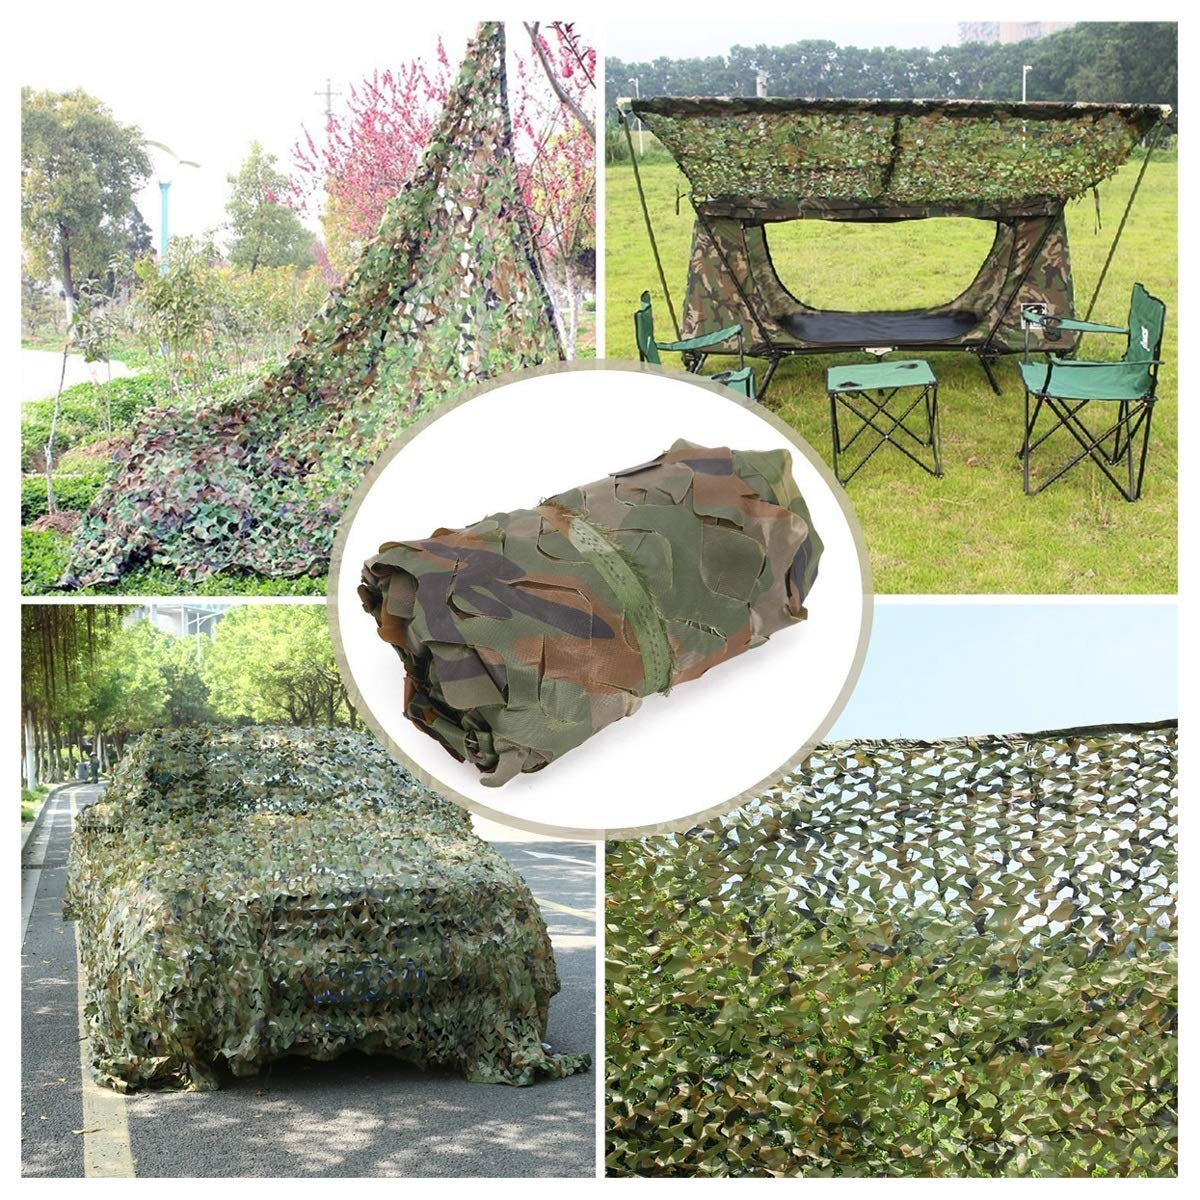 510M(16.432.8ft) Filet de Prougeection Solaire for Jardin 4  5m Camouflage dans la Jungle, Filet de Camouflage Filet D'ombrage Auvents Filet de Camouflage for Tentes Résistantes ,Plusieurs Tailles